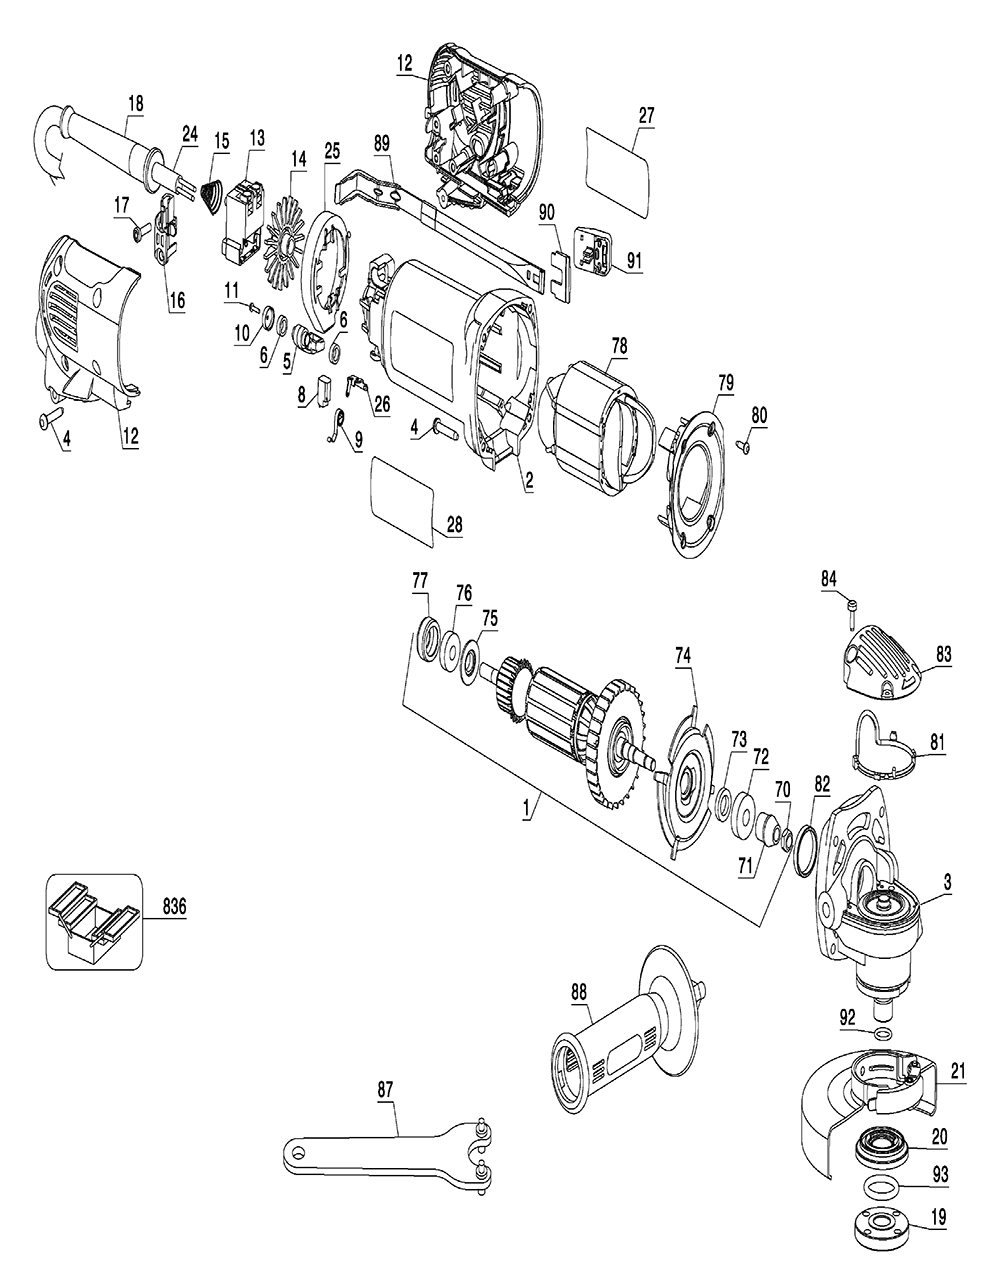 92 jeep cherokee wire harness diagram with Dewalt Radio Wiring Diagram on Index in addition 1hyoq 1991 Ford Ranger 3 0 A Diagram Vacuum Lines Go as well 122965 Where Ocr Relay also 149322543870071581 together with 1997 Dodge Dakota O2 Sensor Wiring Diagram.